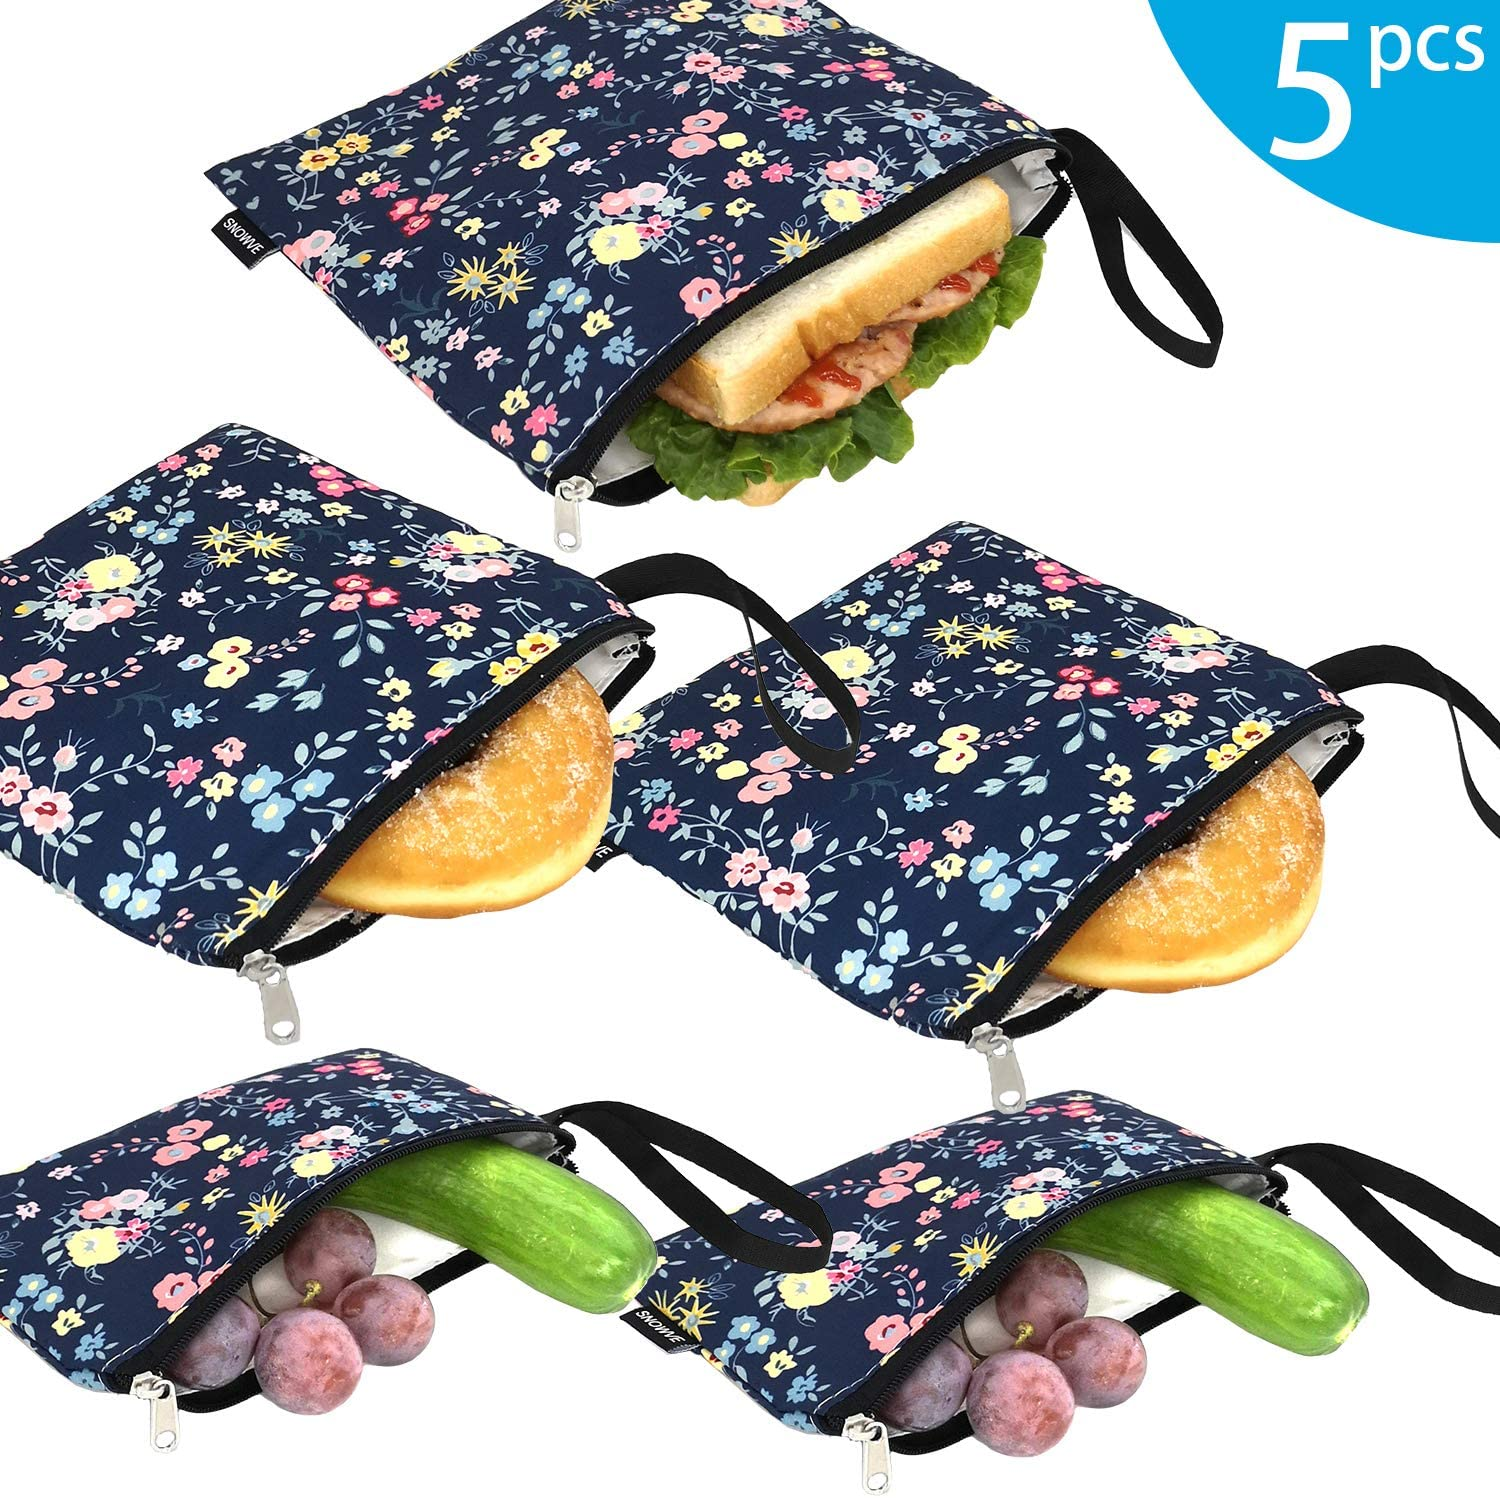 Reusable Snack Bags Sandwich Bags - Dual Layer Eco Friendly Dishwasher Safe Lunch Baggies, BPA Free, PVC Free, Set of 5 Pack(Flower)